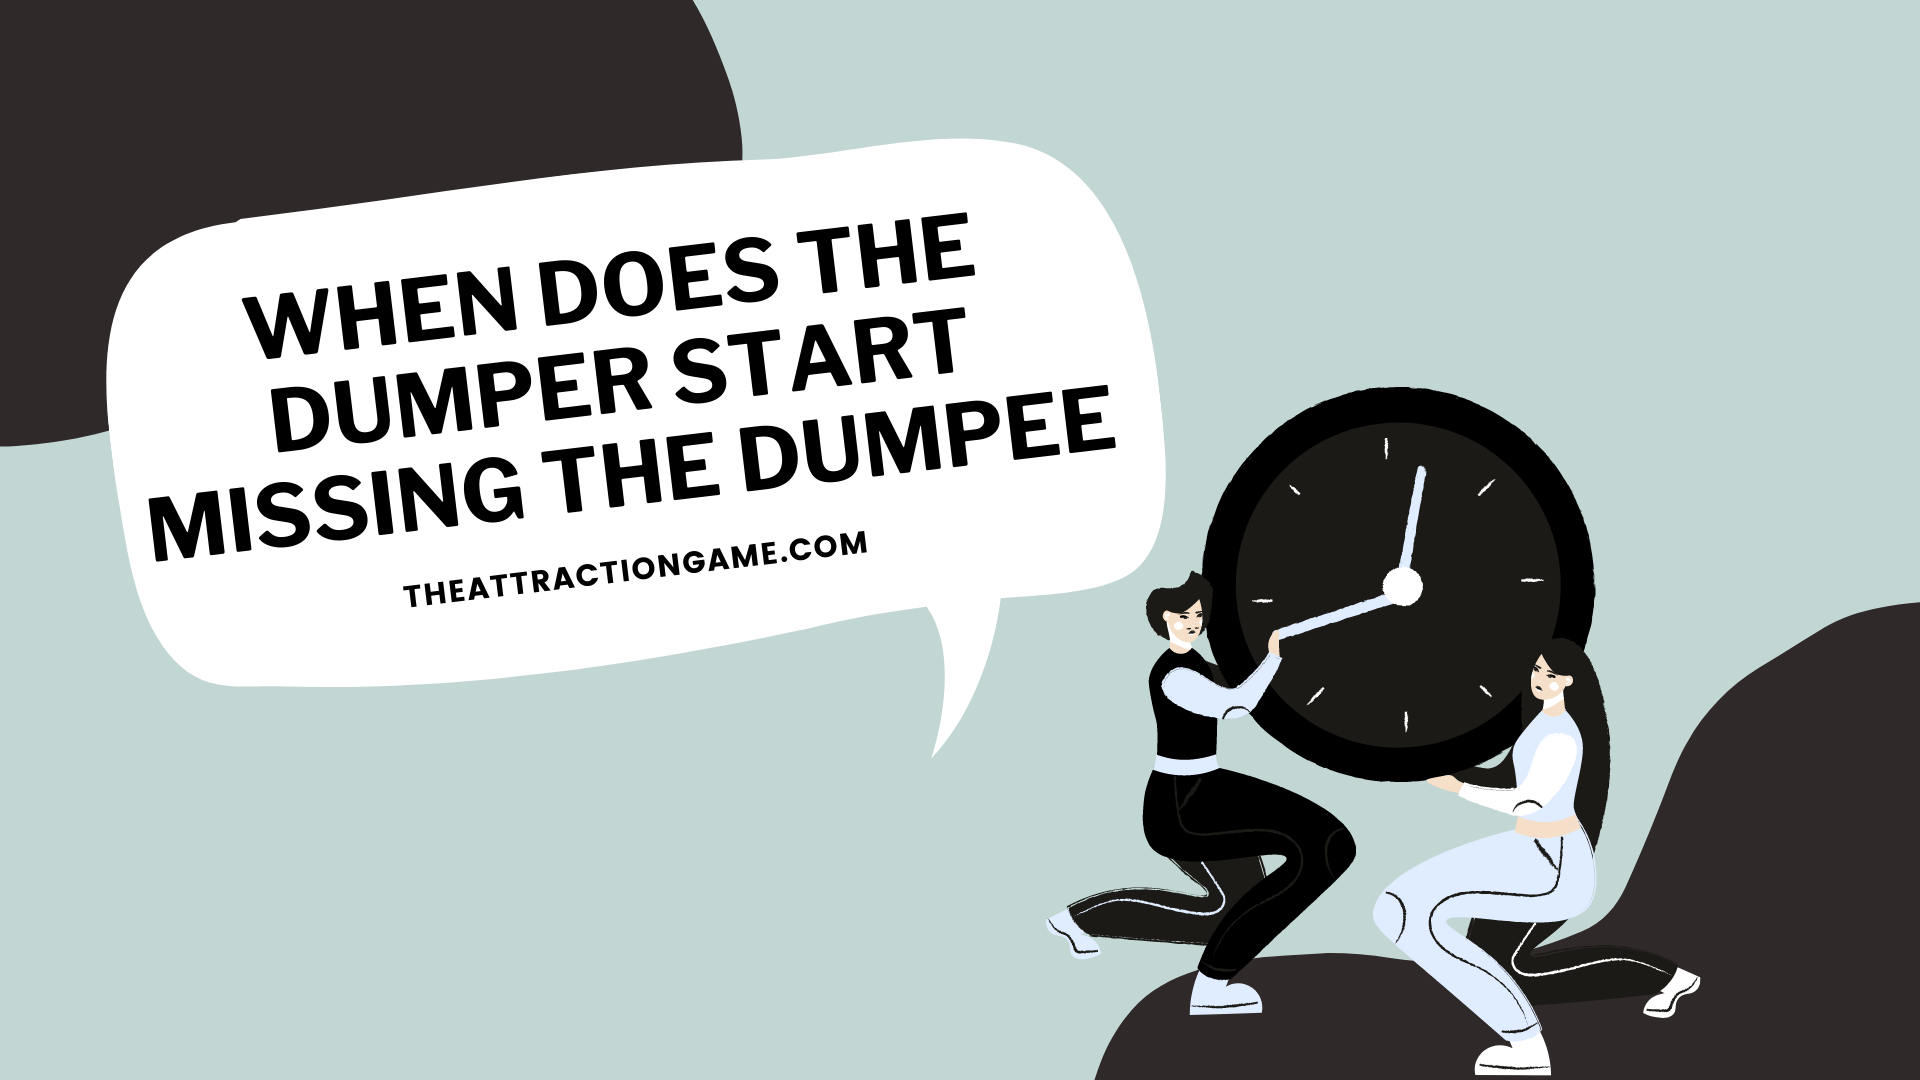 the dumper misses the dumpee, when will the dumper miss the dumpee, does the dumper miss the dumpee, how long does it take for the dumper to miss the dumpee